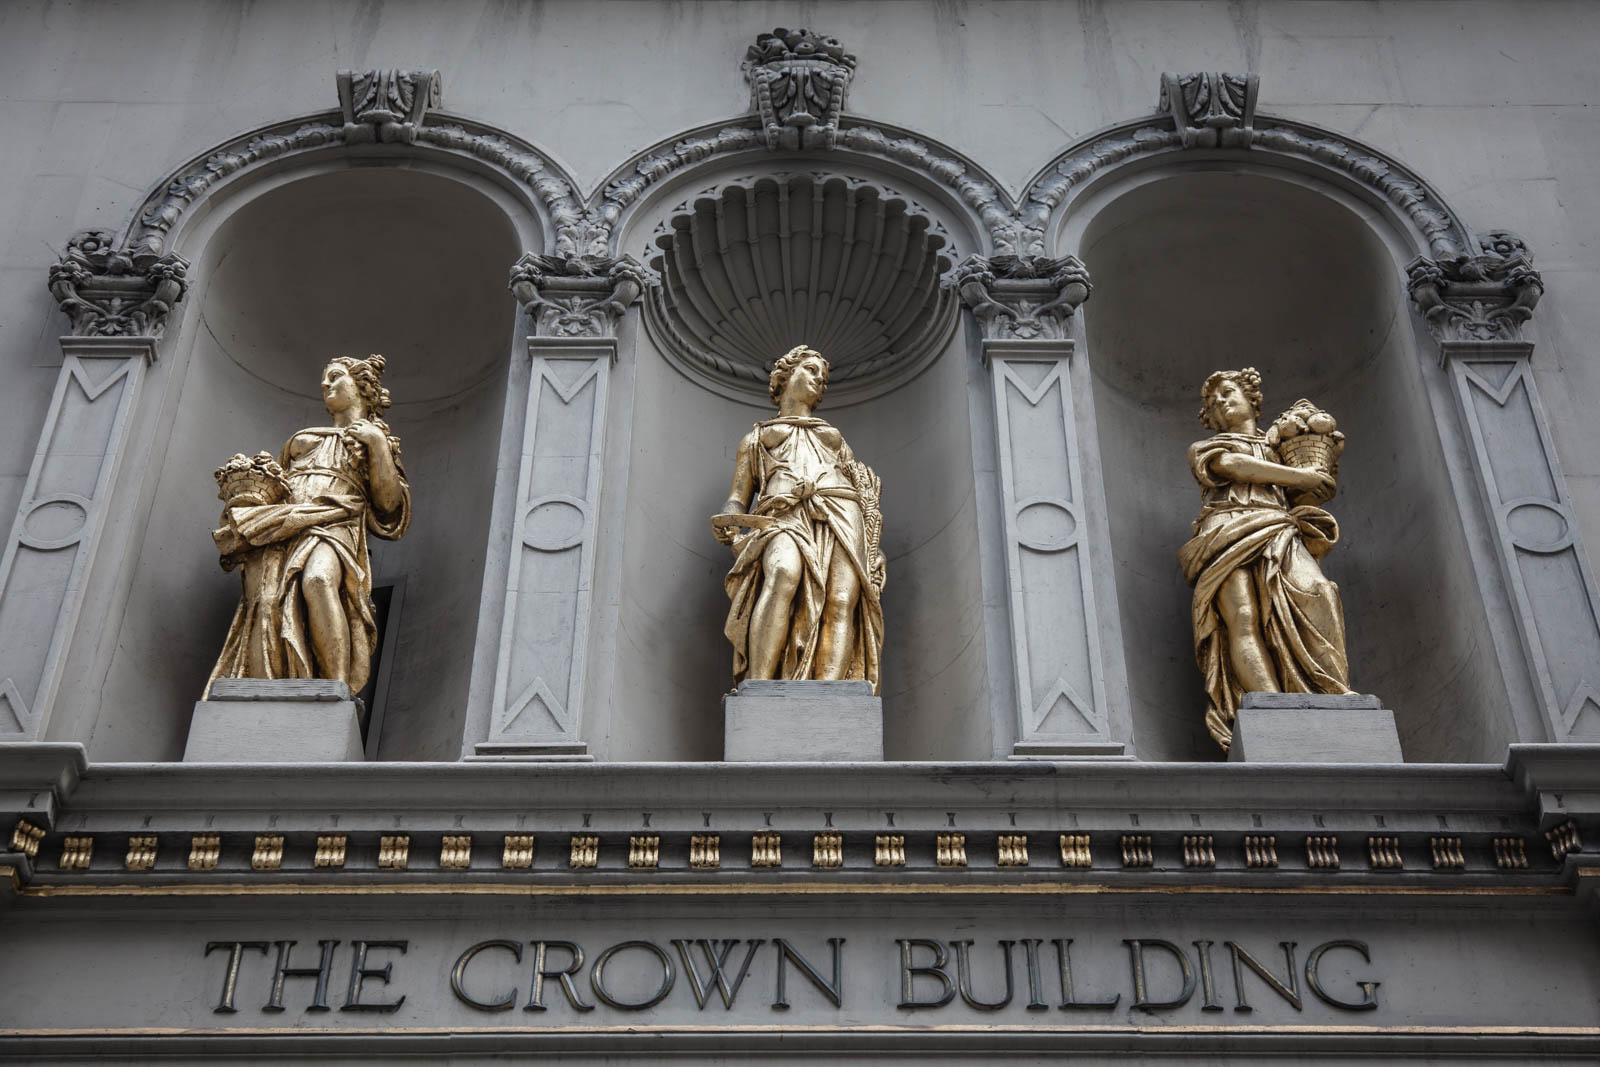 The Crown Building